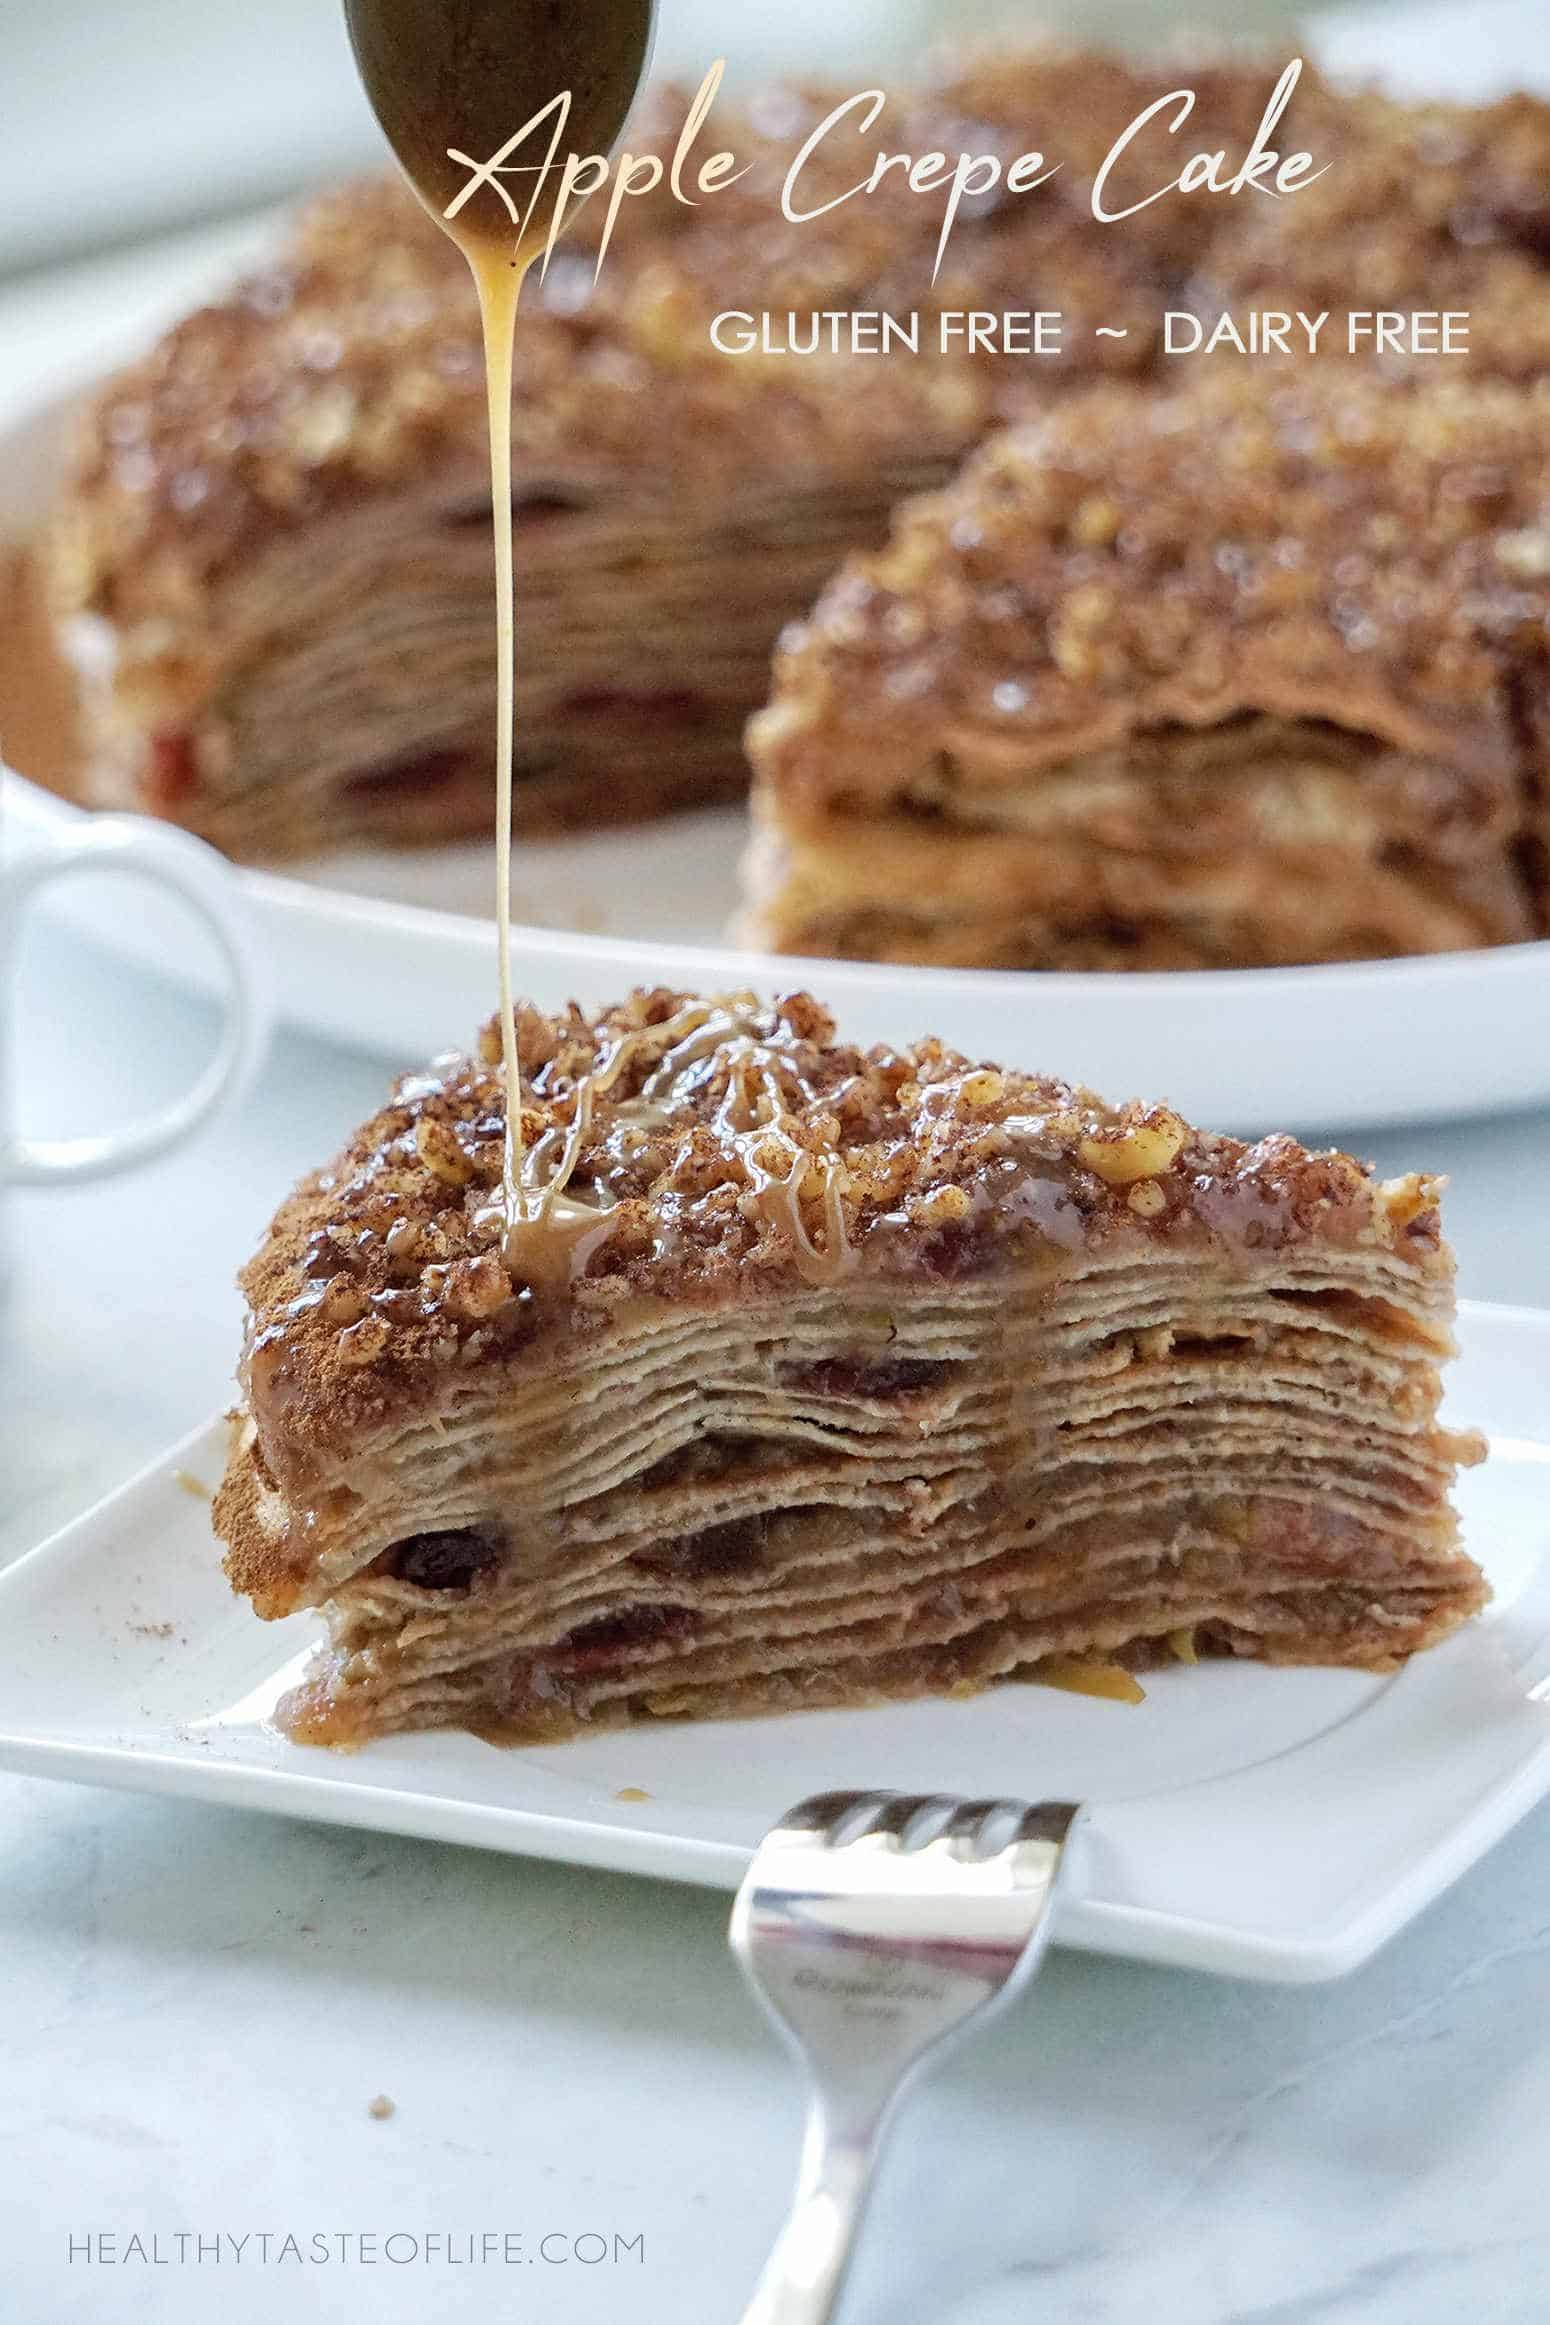 This healthy apple crepe cake is a gluten and dairy free dessert perfect for any special occasions. Thin gluten free crepes layers filled with apple cinnamon filling and topped with walnuts and a delicious dairy free caramel sauce.